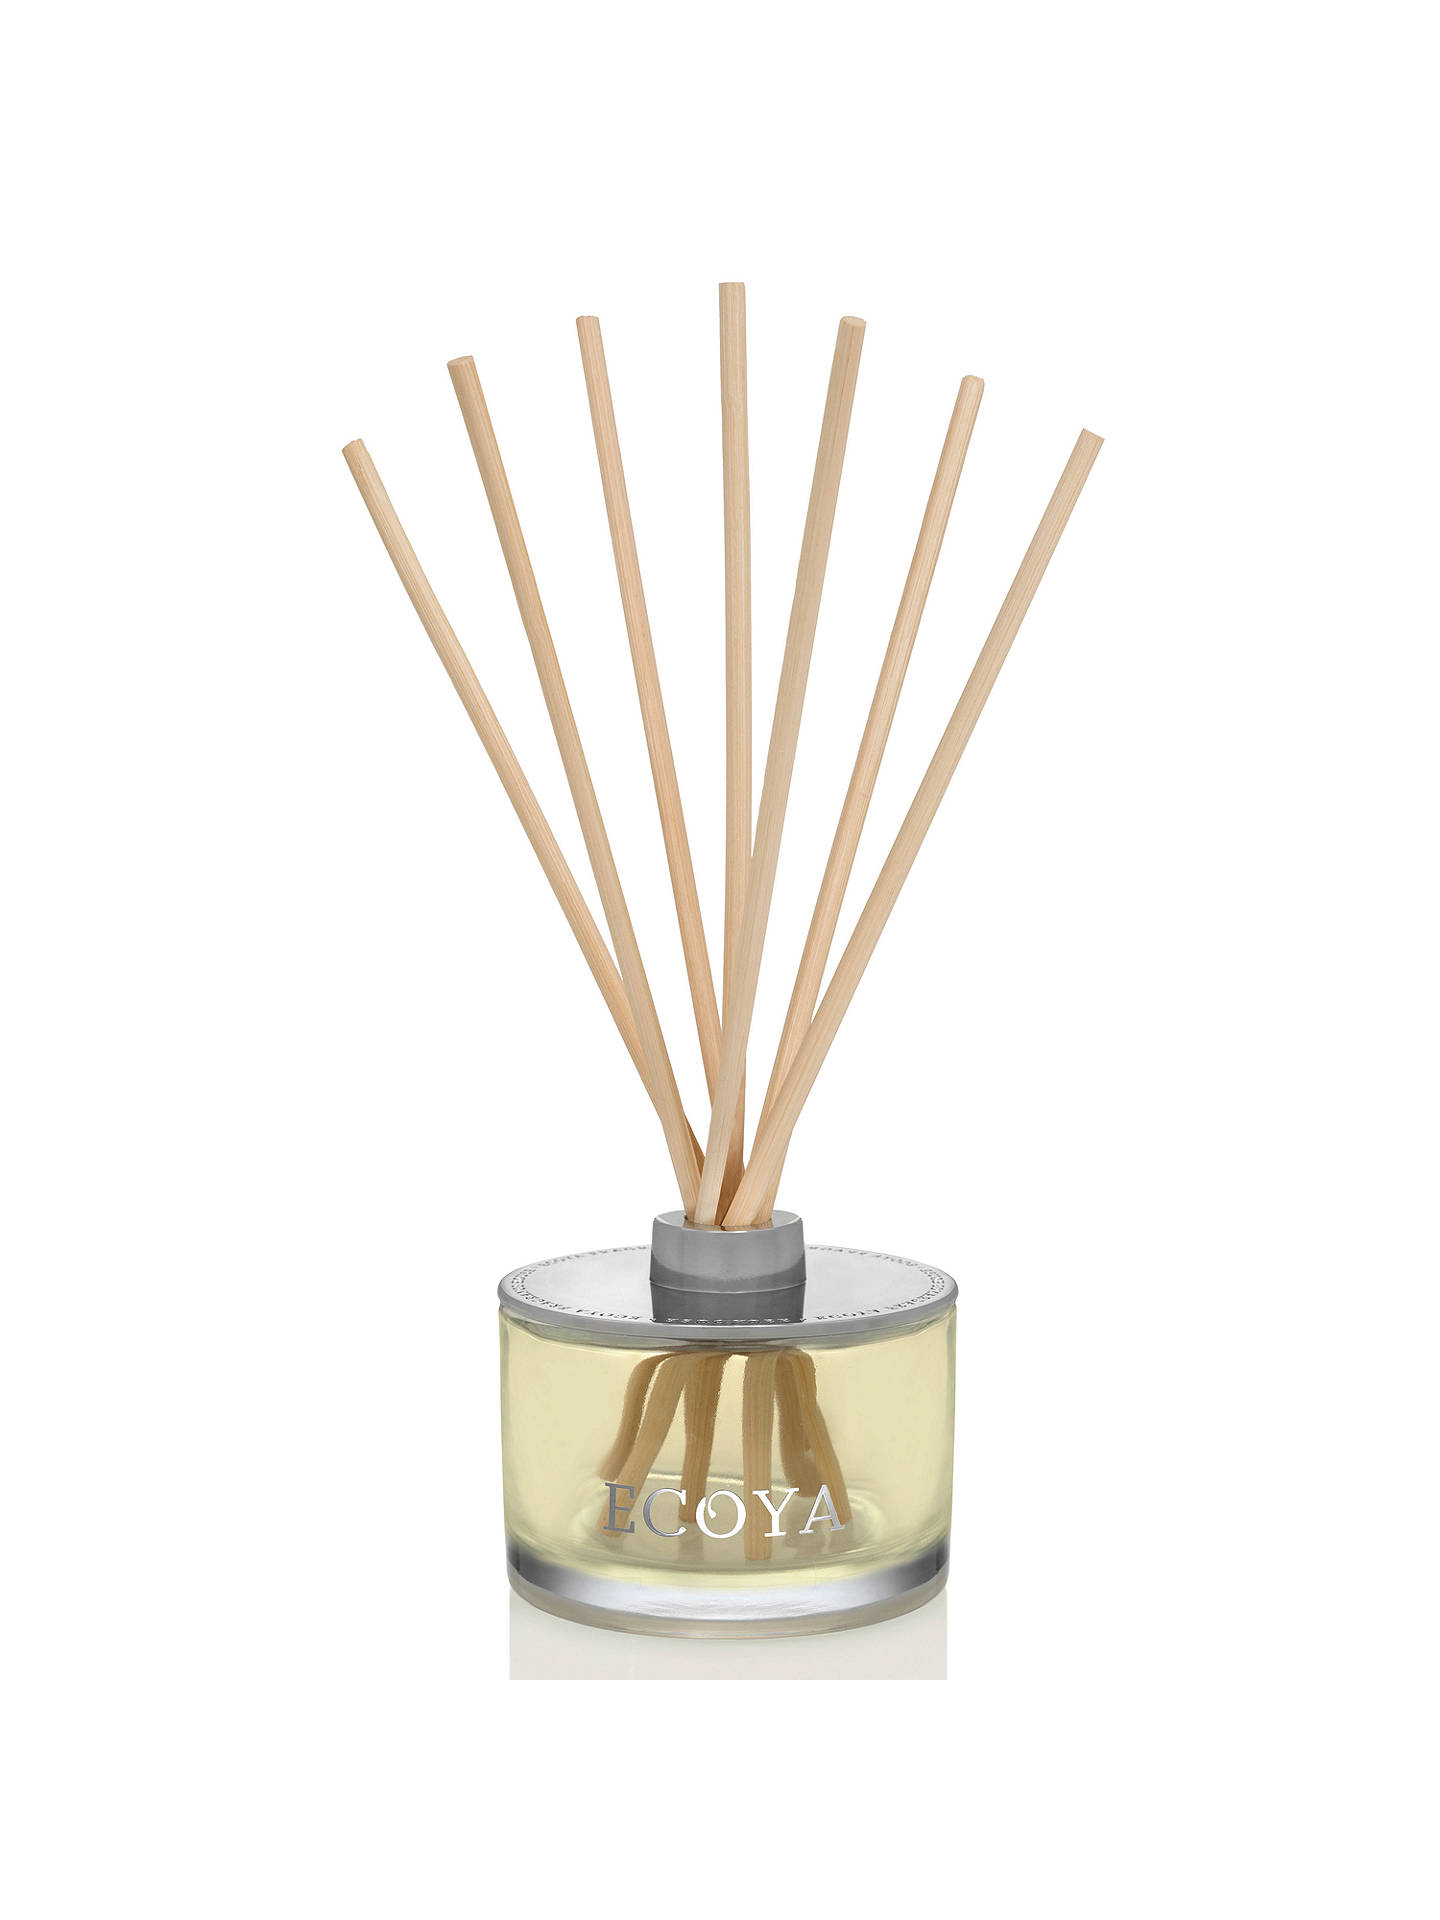 Ecoya Lotus Flower Diffuser 200ml At John Lewis Partners